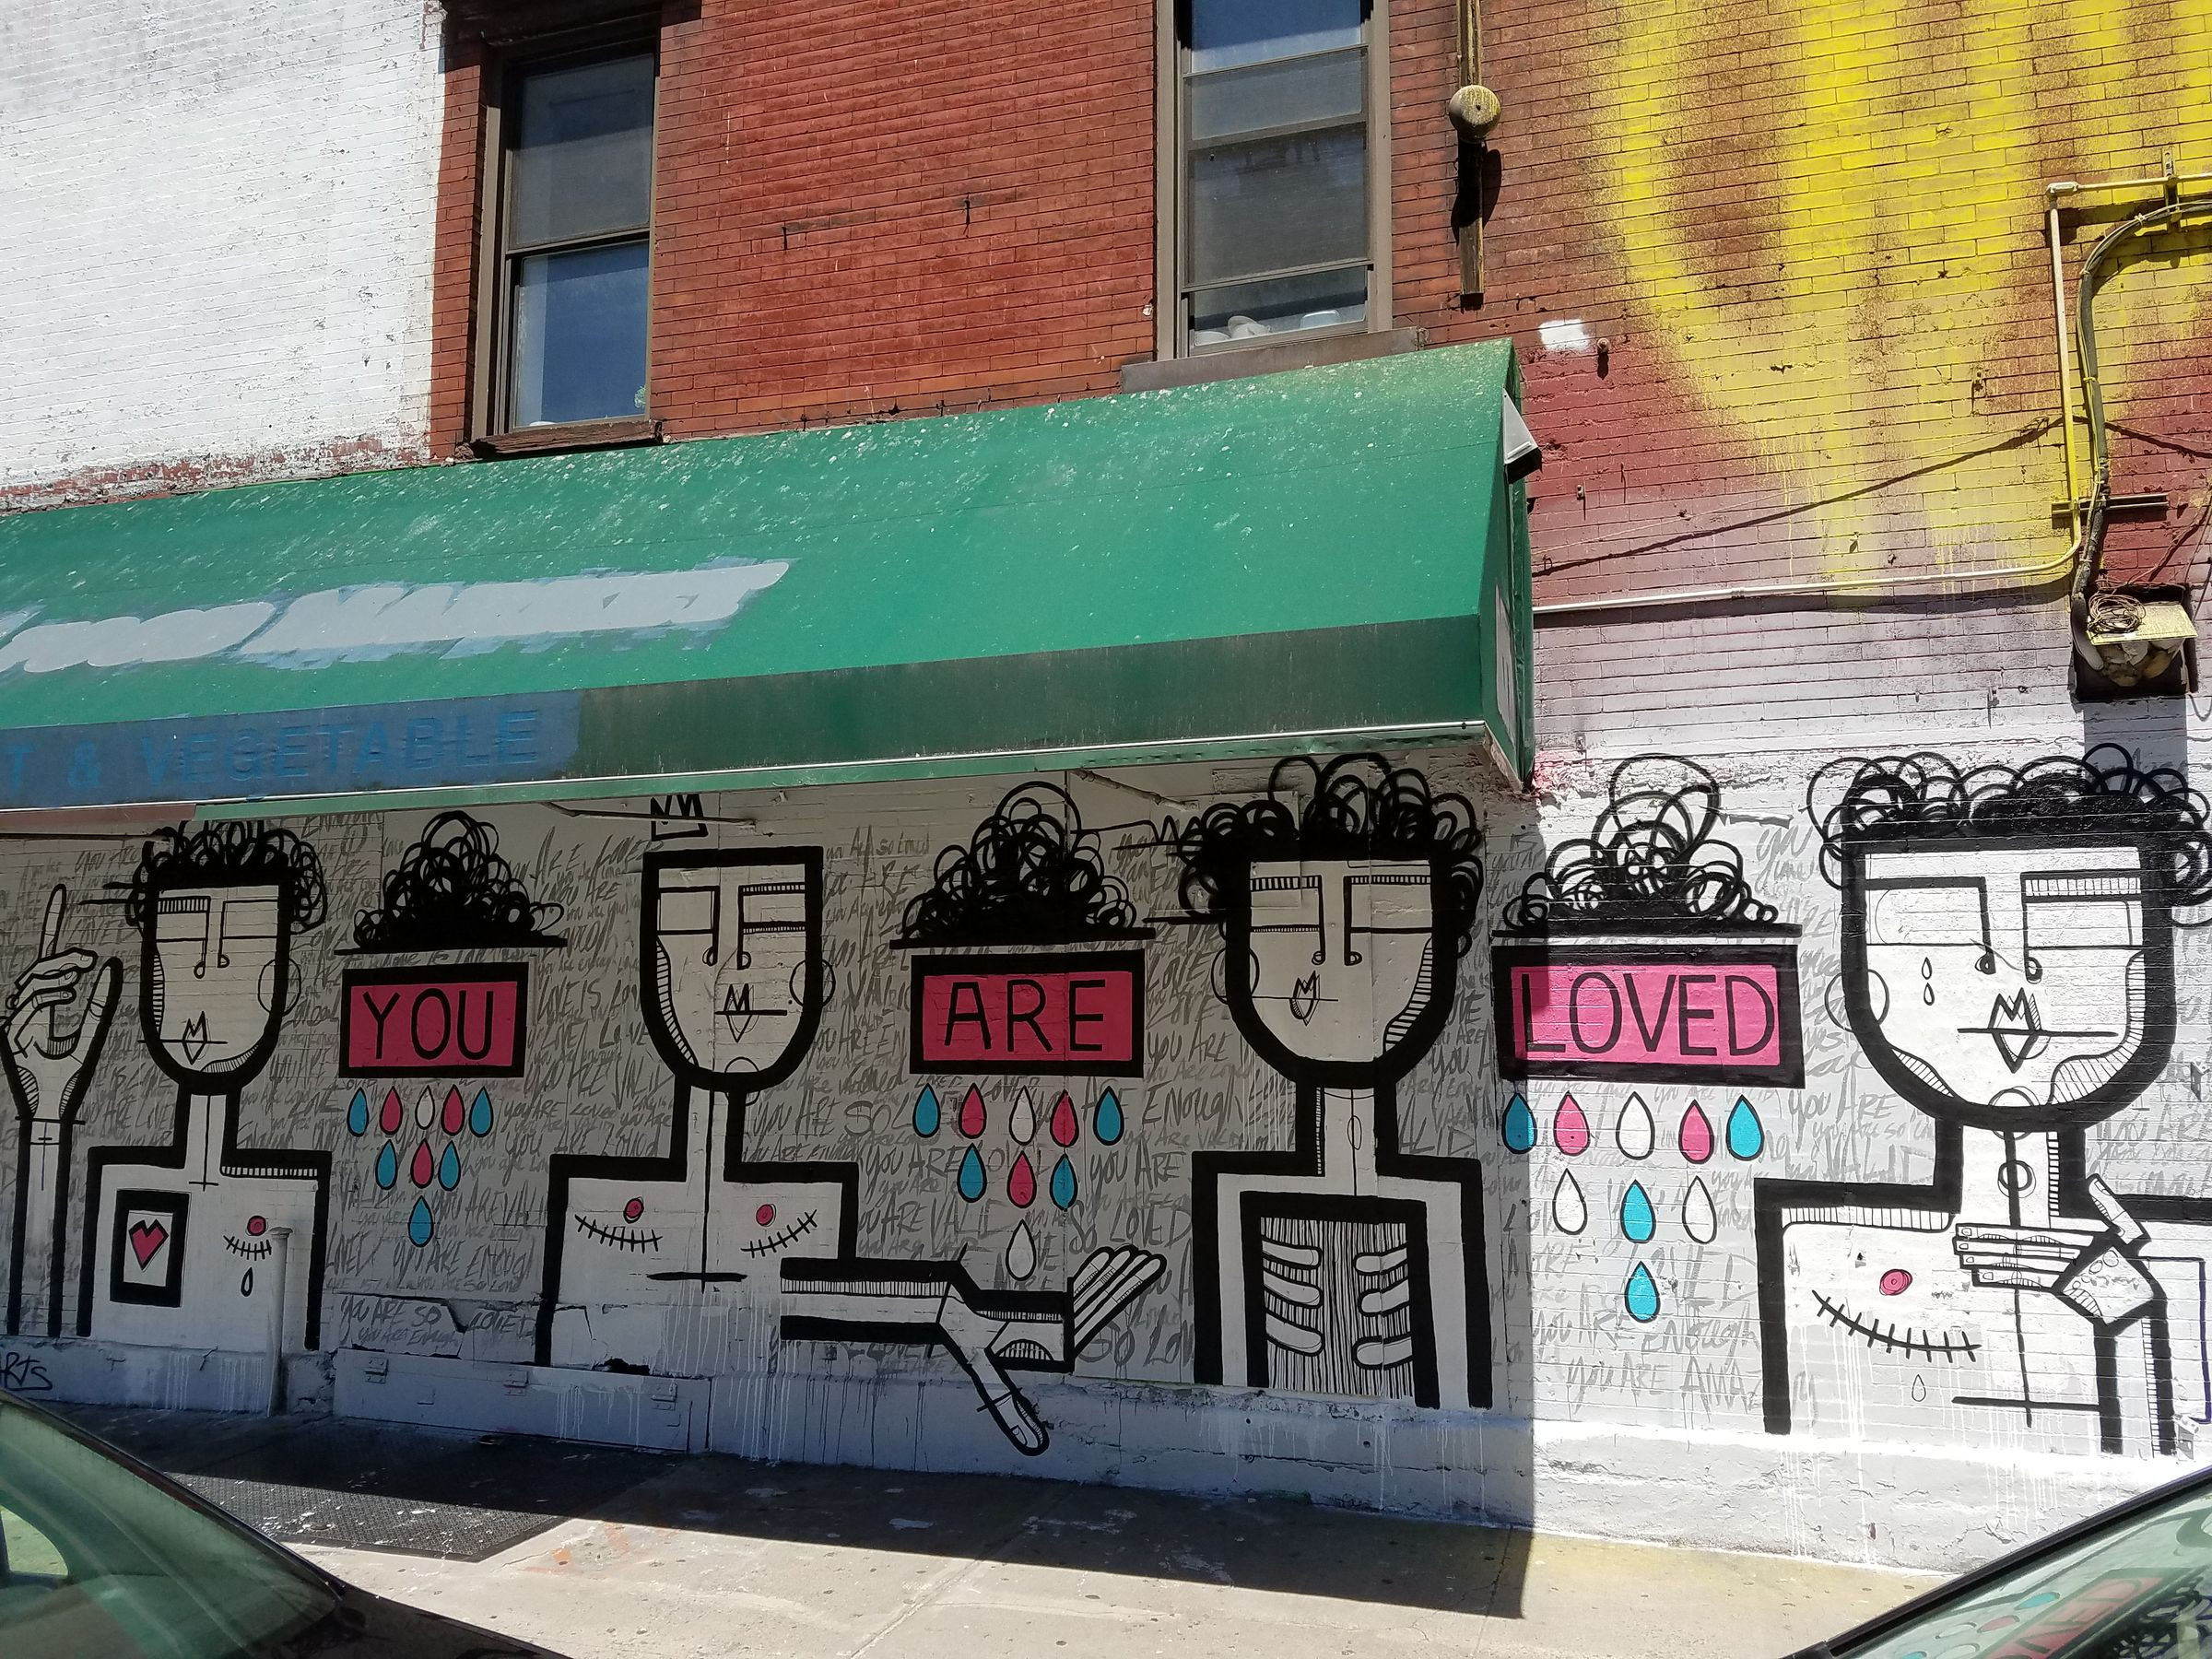 "An exterior wall mural under an awning. There are four busts of people, most with outstretched arms and stitches from top surgery. Some have cutouts exposing their stylized innards. The phrase ""You Are Loved"" is spread out between the figures, and each word drips pink, blue, and white tears."